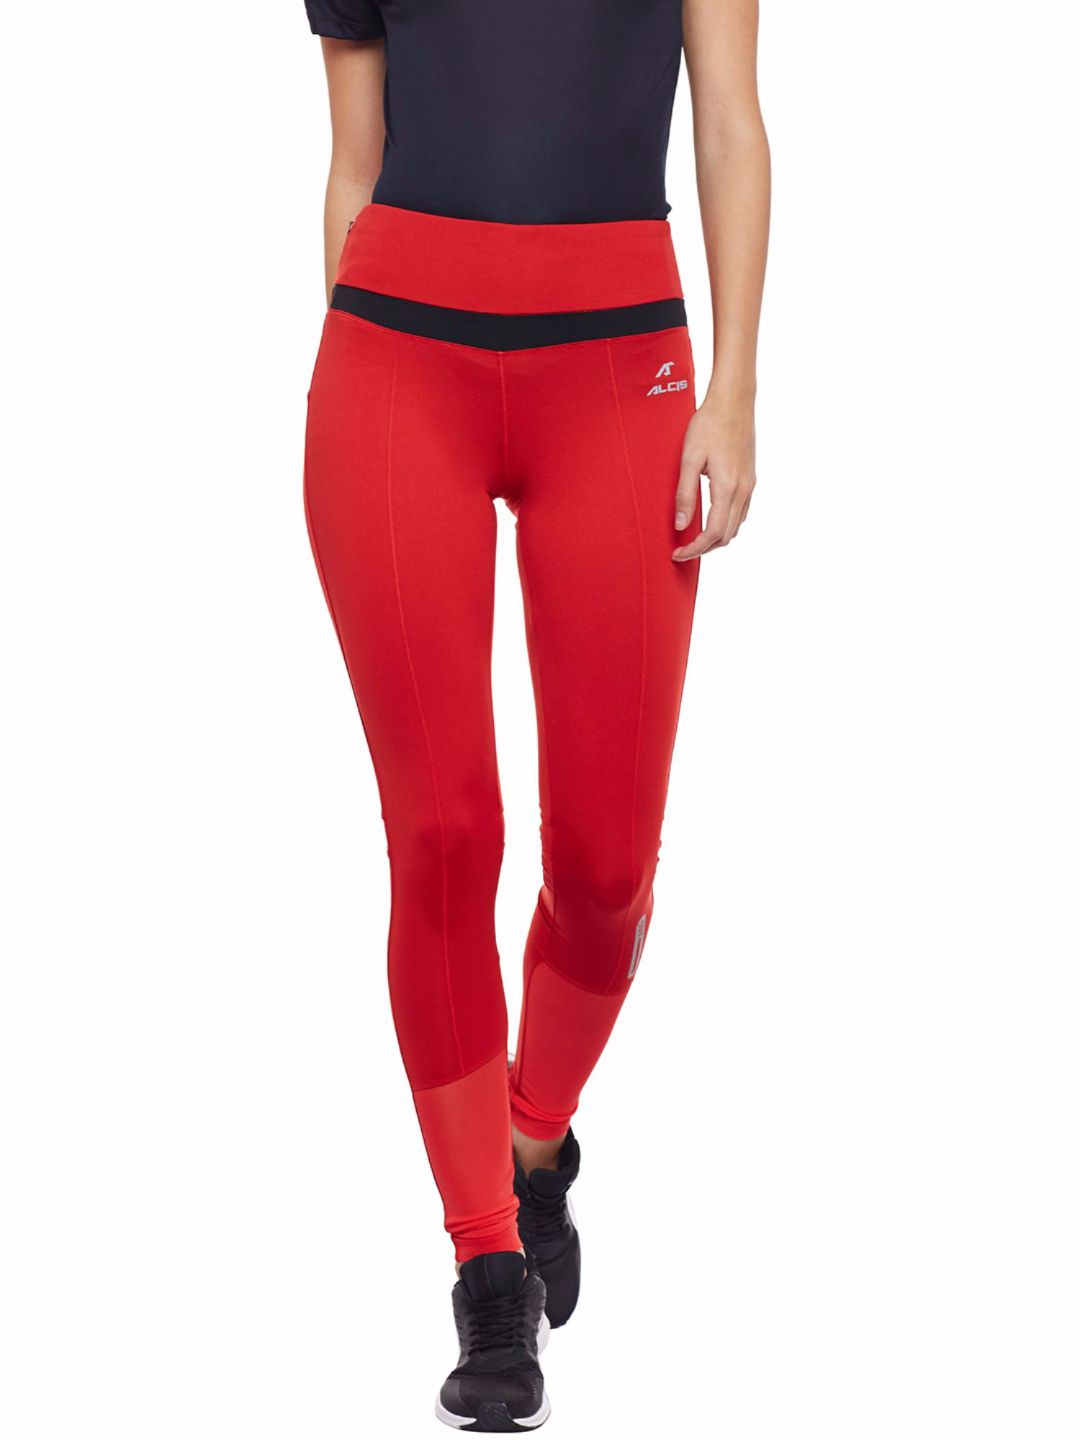 Alcis Women Red Mesh Leggings